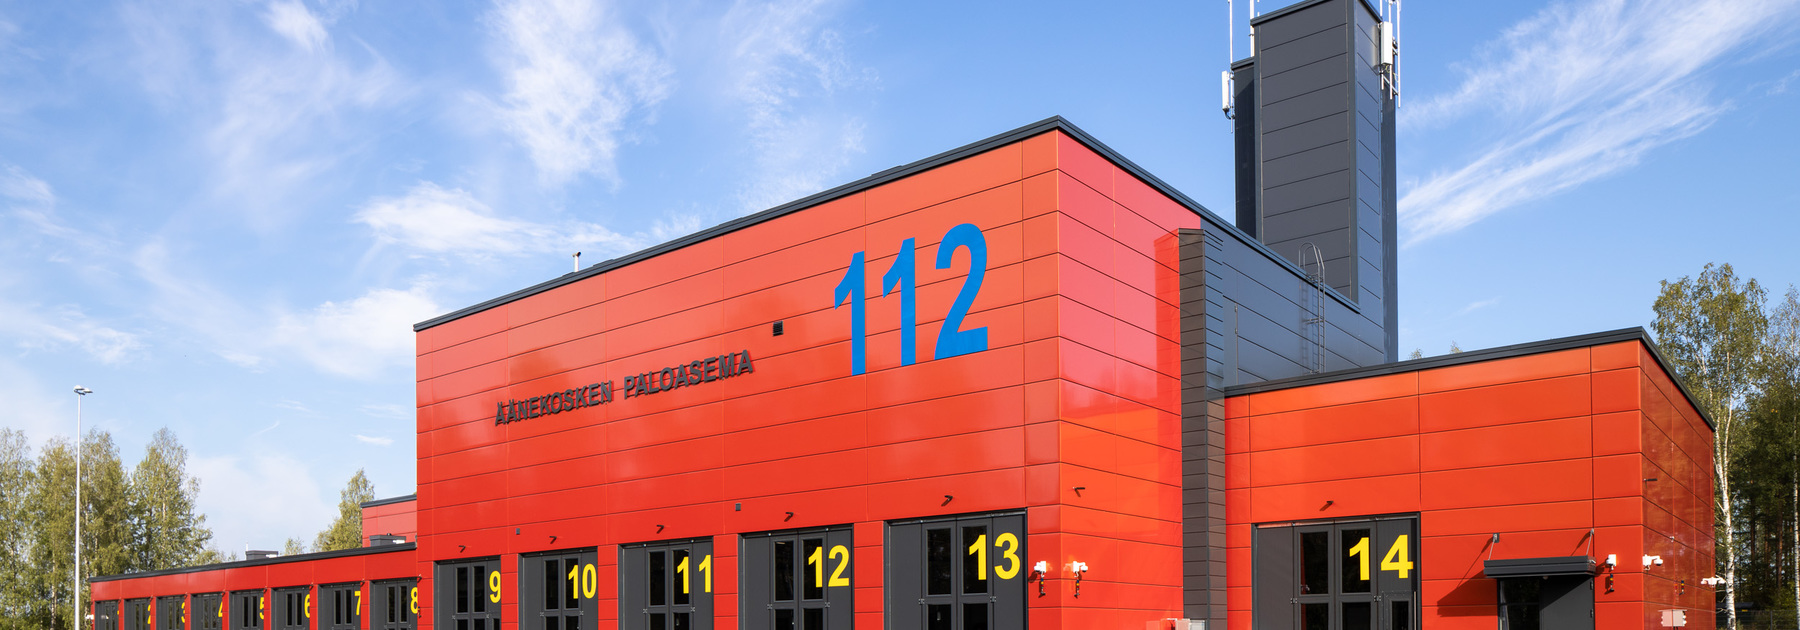 Evolution panels, modular facade, finland, fire station design